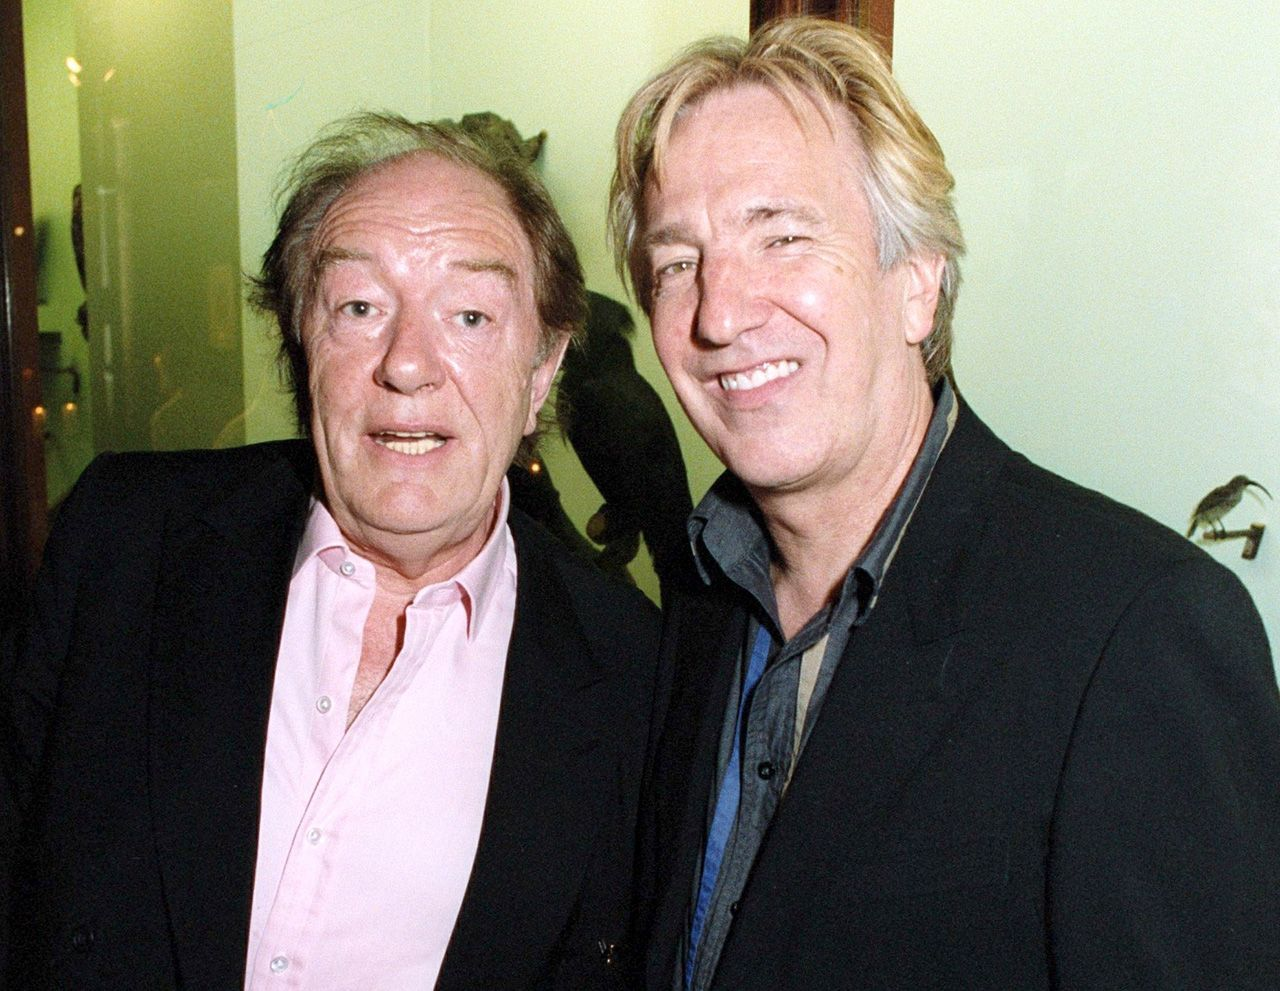 Michael Gambon \u0026 Alan Rickman - 2004, I think ... around the time ...